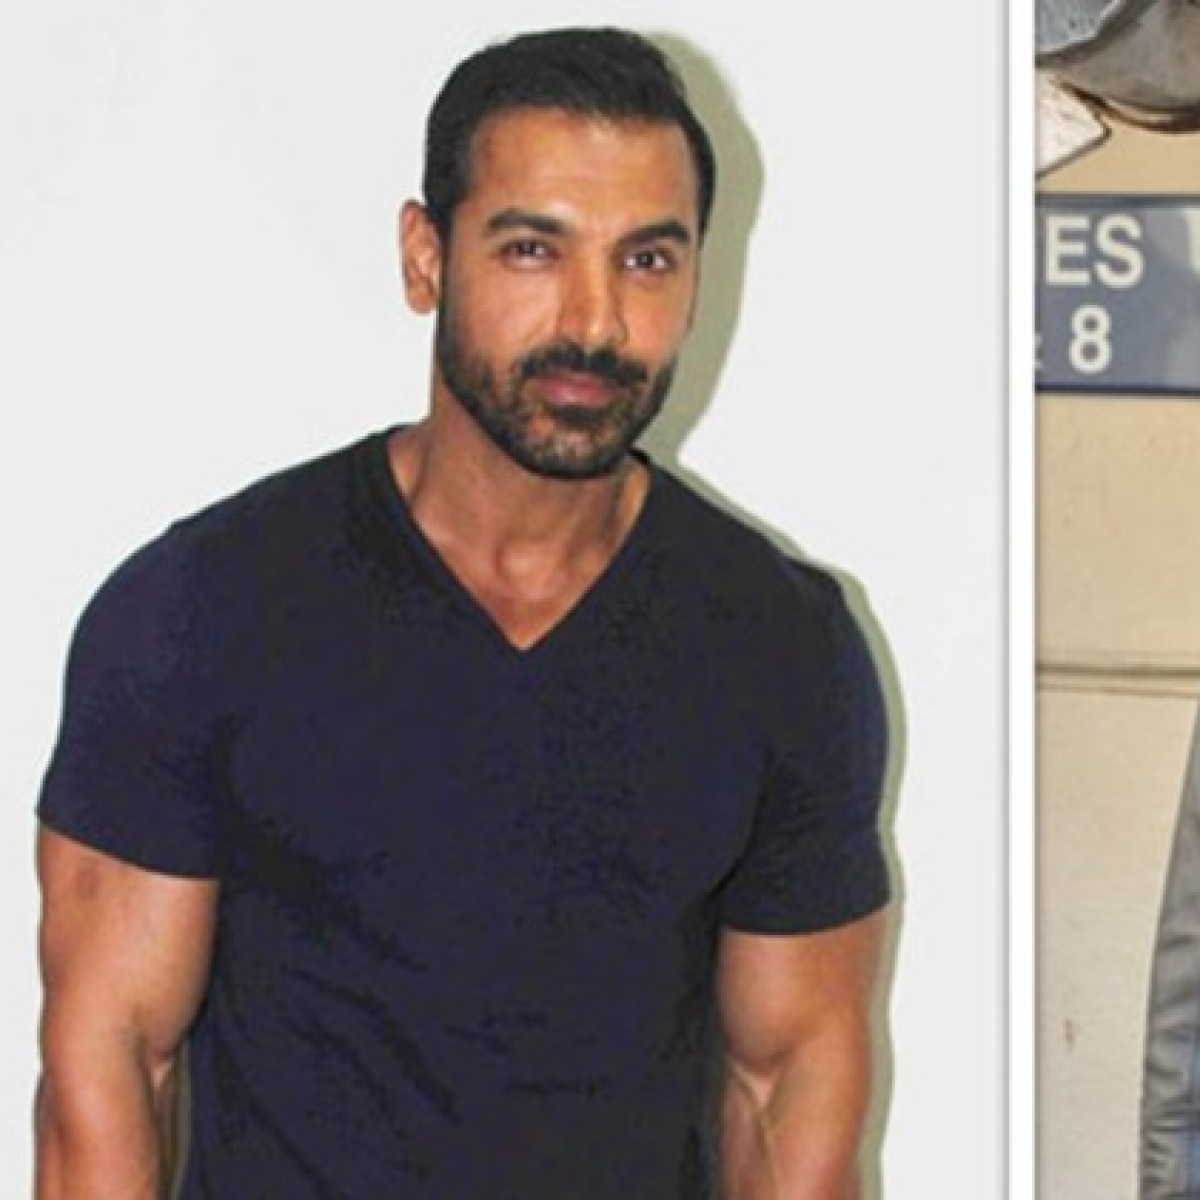 No heroes here: Both John Abraham and Aditya Roy to play antagonists in 'Ek Villain 2'